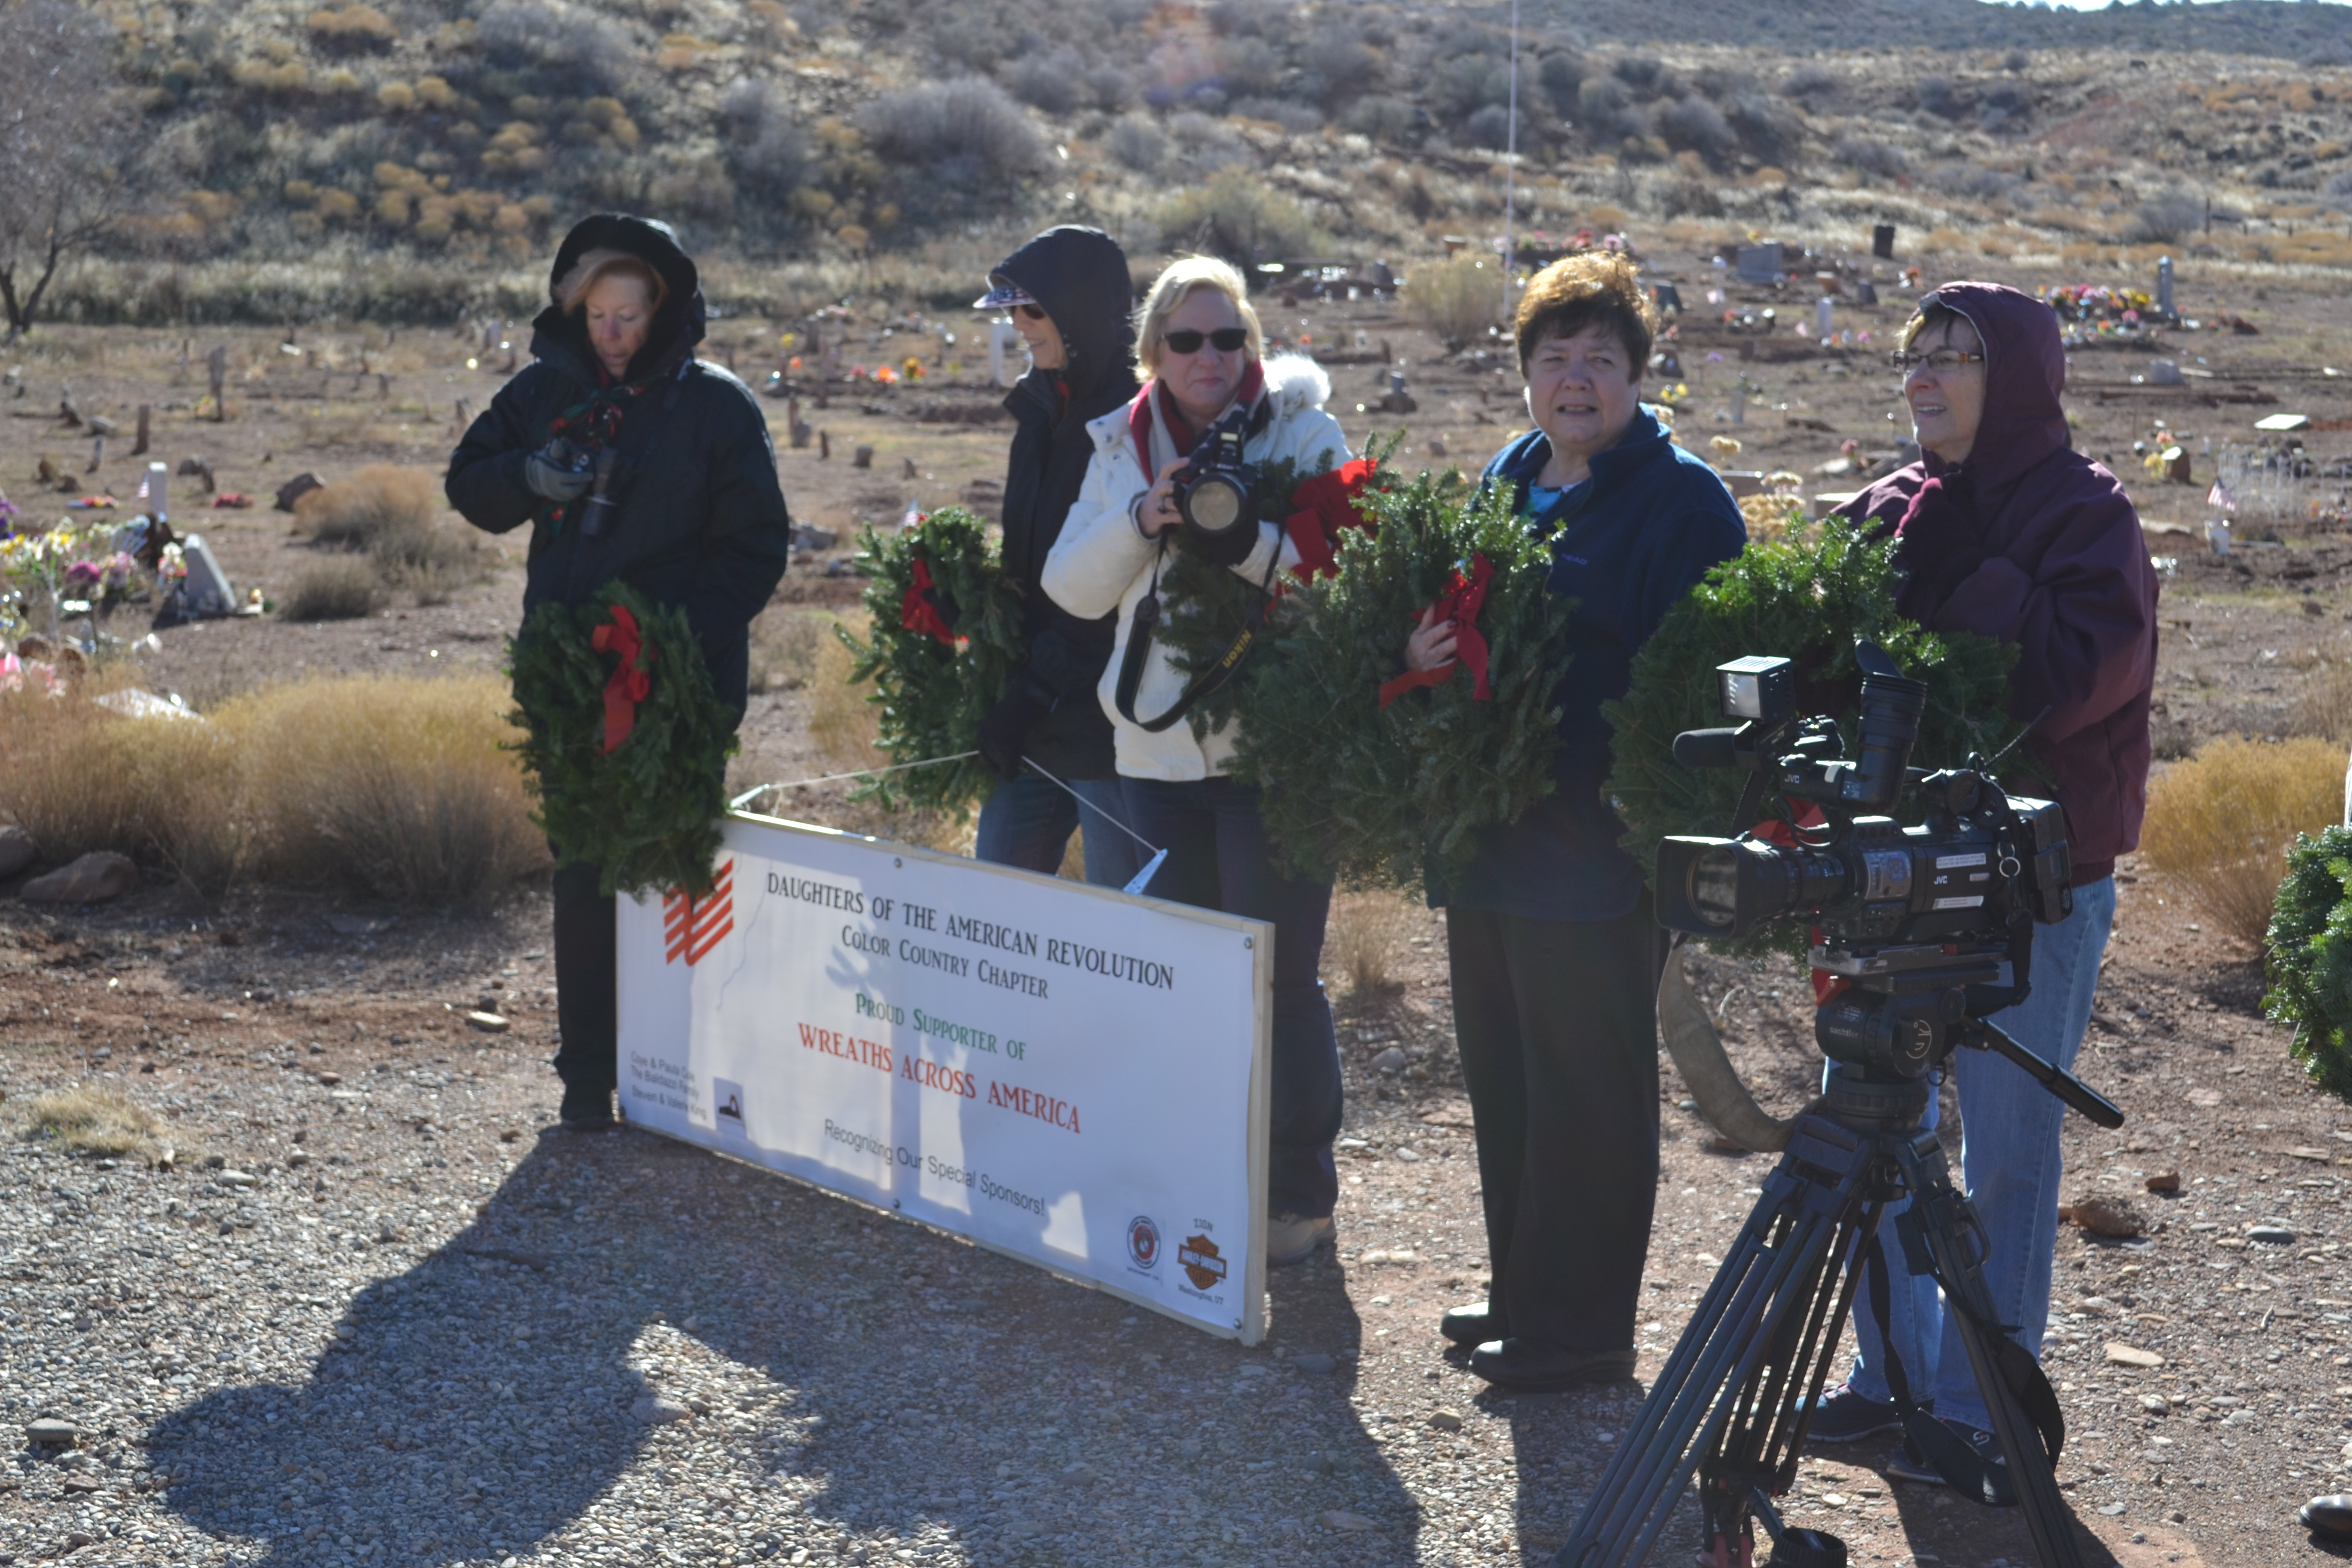 Members of Daughters of the American Revolution participate in a Wreaths Across America ceremony, Shivwits, Utah, Dec. 17, 2016 | Photo by Joseph Witham, St. George News